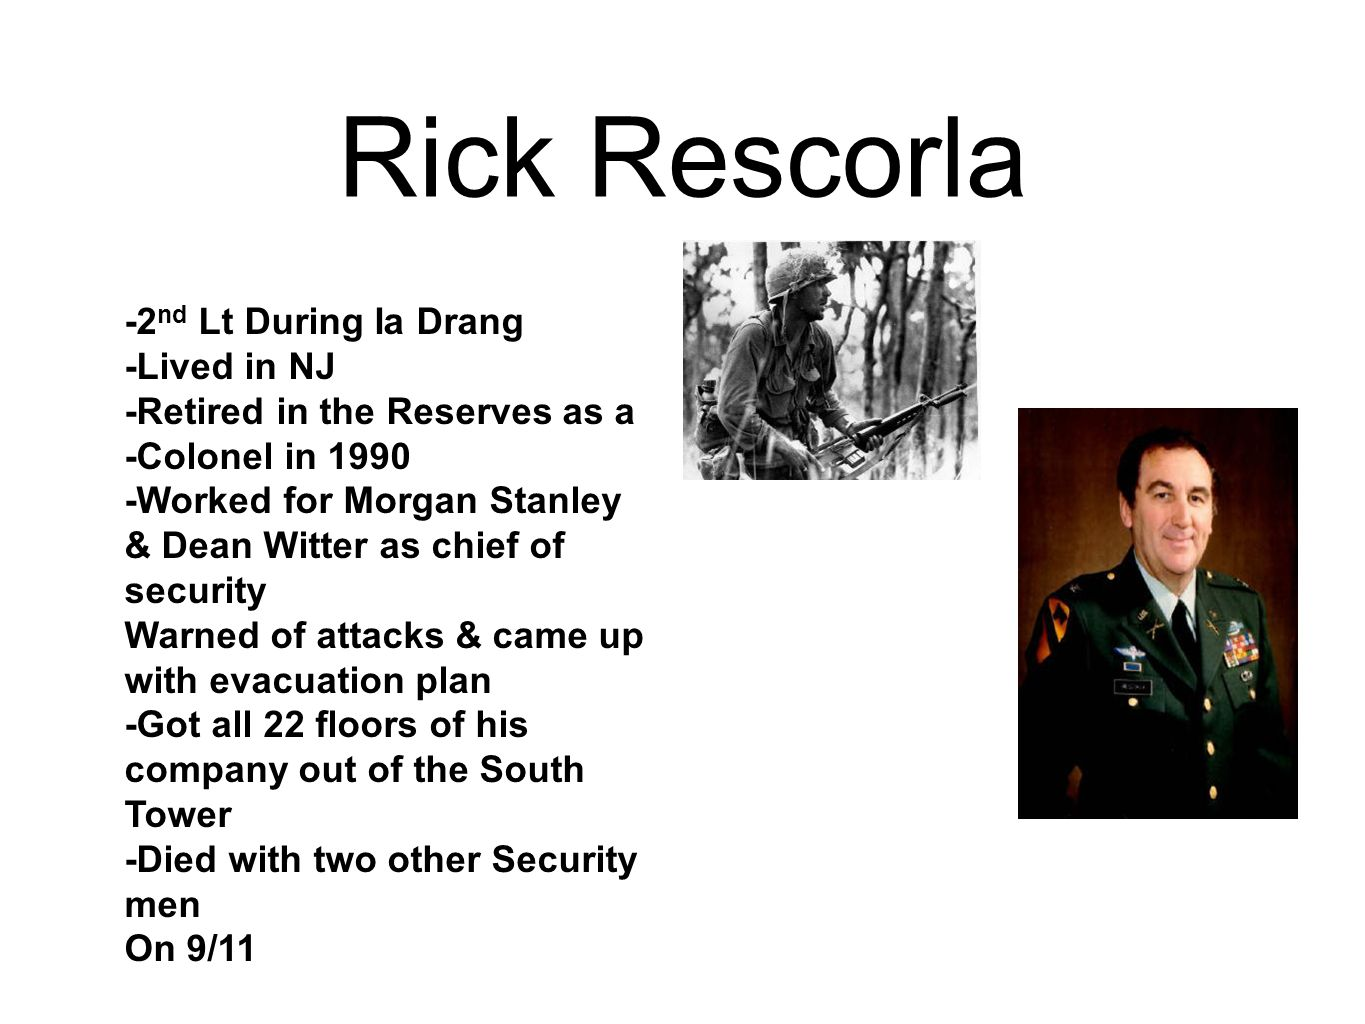 Rick Rescorla -2nd Lt During Ia Drang -Lived in NJ